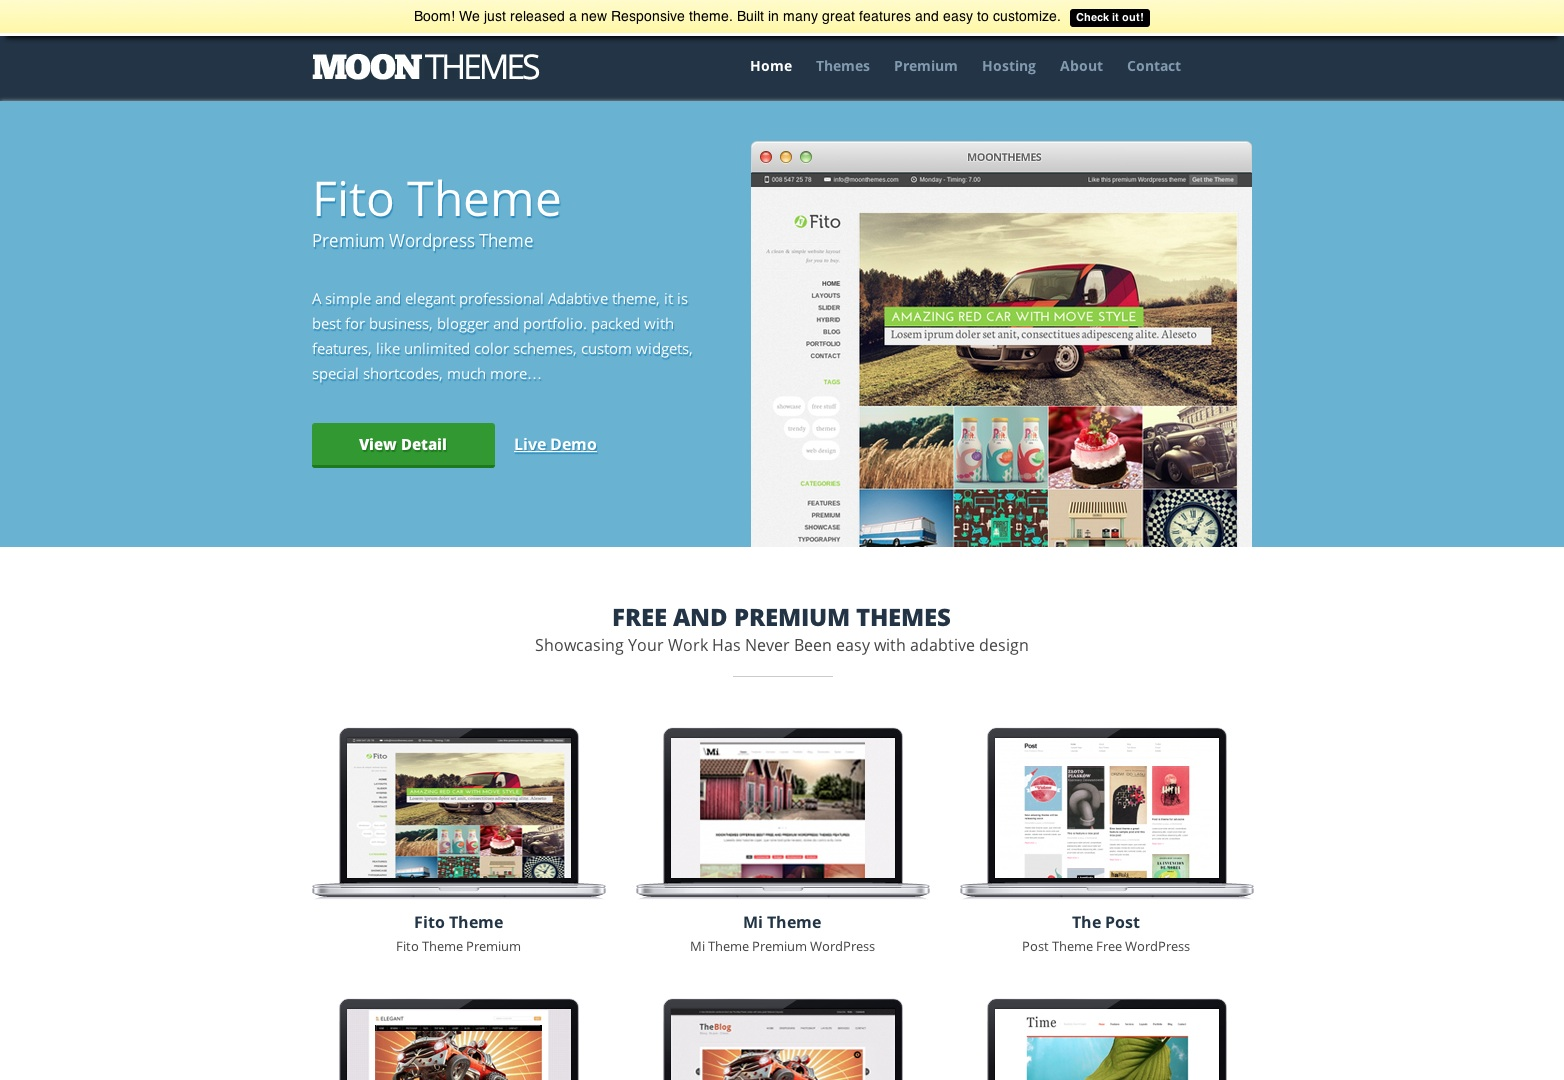 premium thesis skins The best selection of top quality premium thesis skins for the thesis 2 framework by diythemes our thesis 2 skins are mobile responsive, html5, fast loading, quality coded and beautifully designed, you won't find any other selection like this.